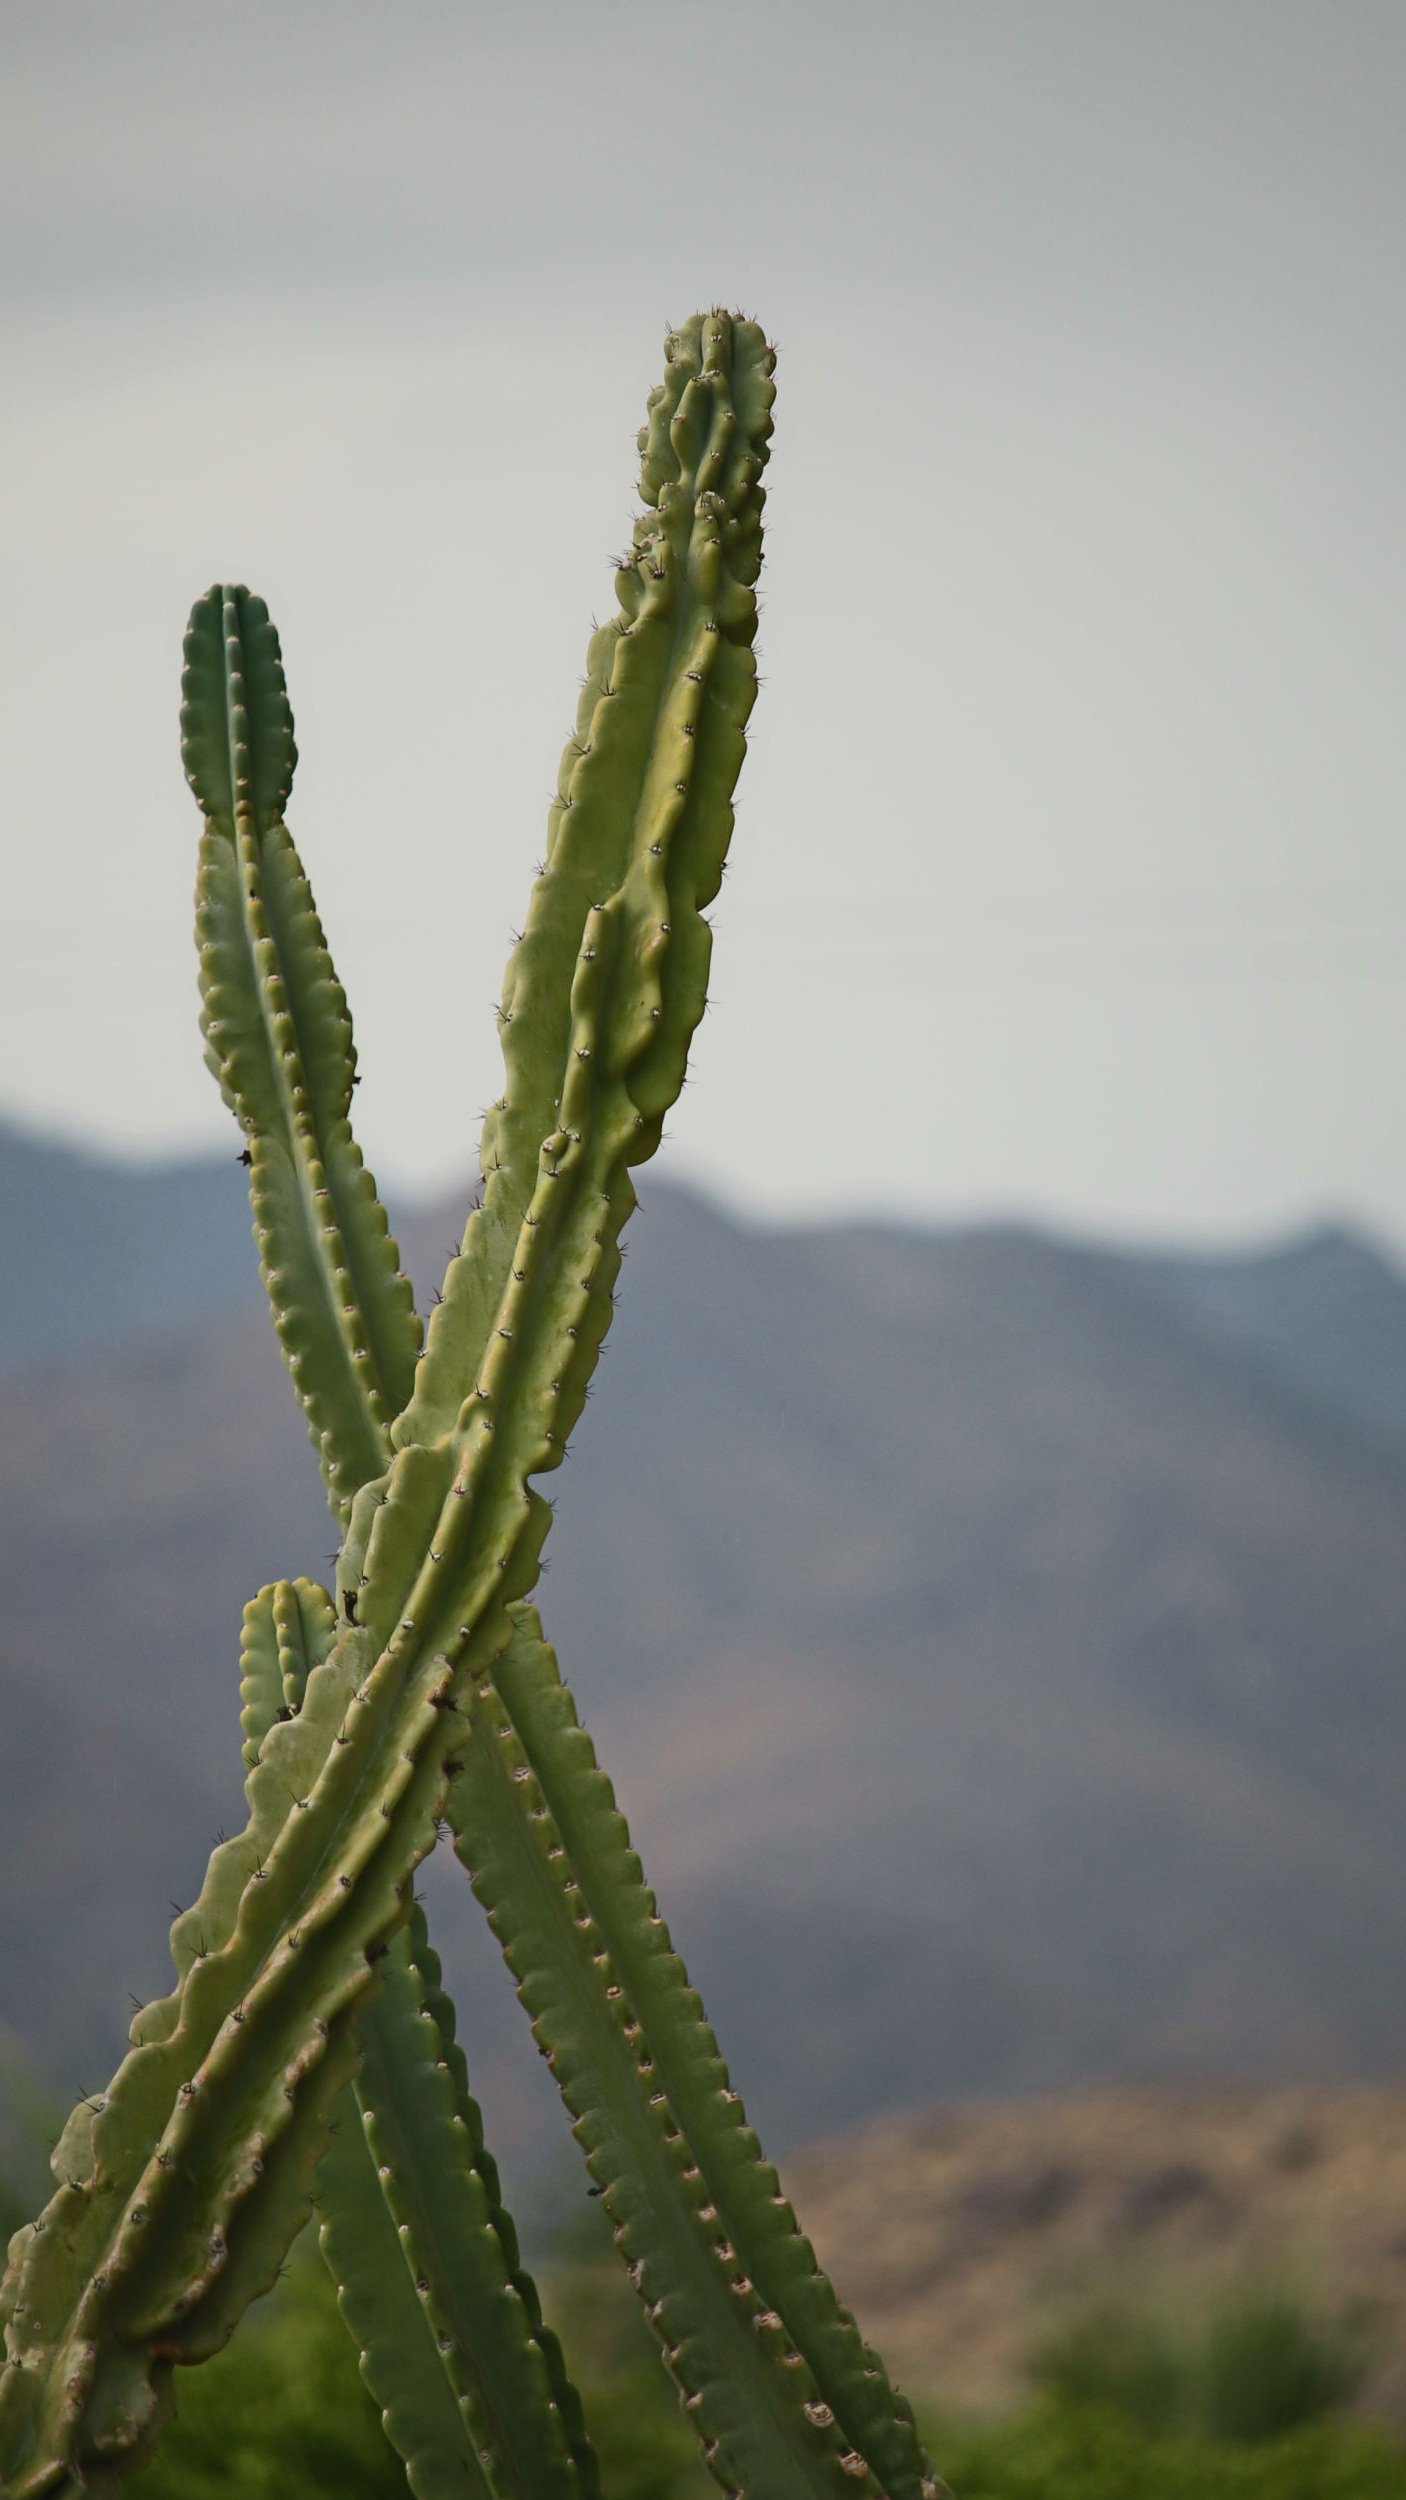 two tall cactus arms crossing over each other with blurred mountains in background.jpg